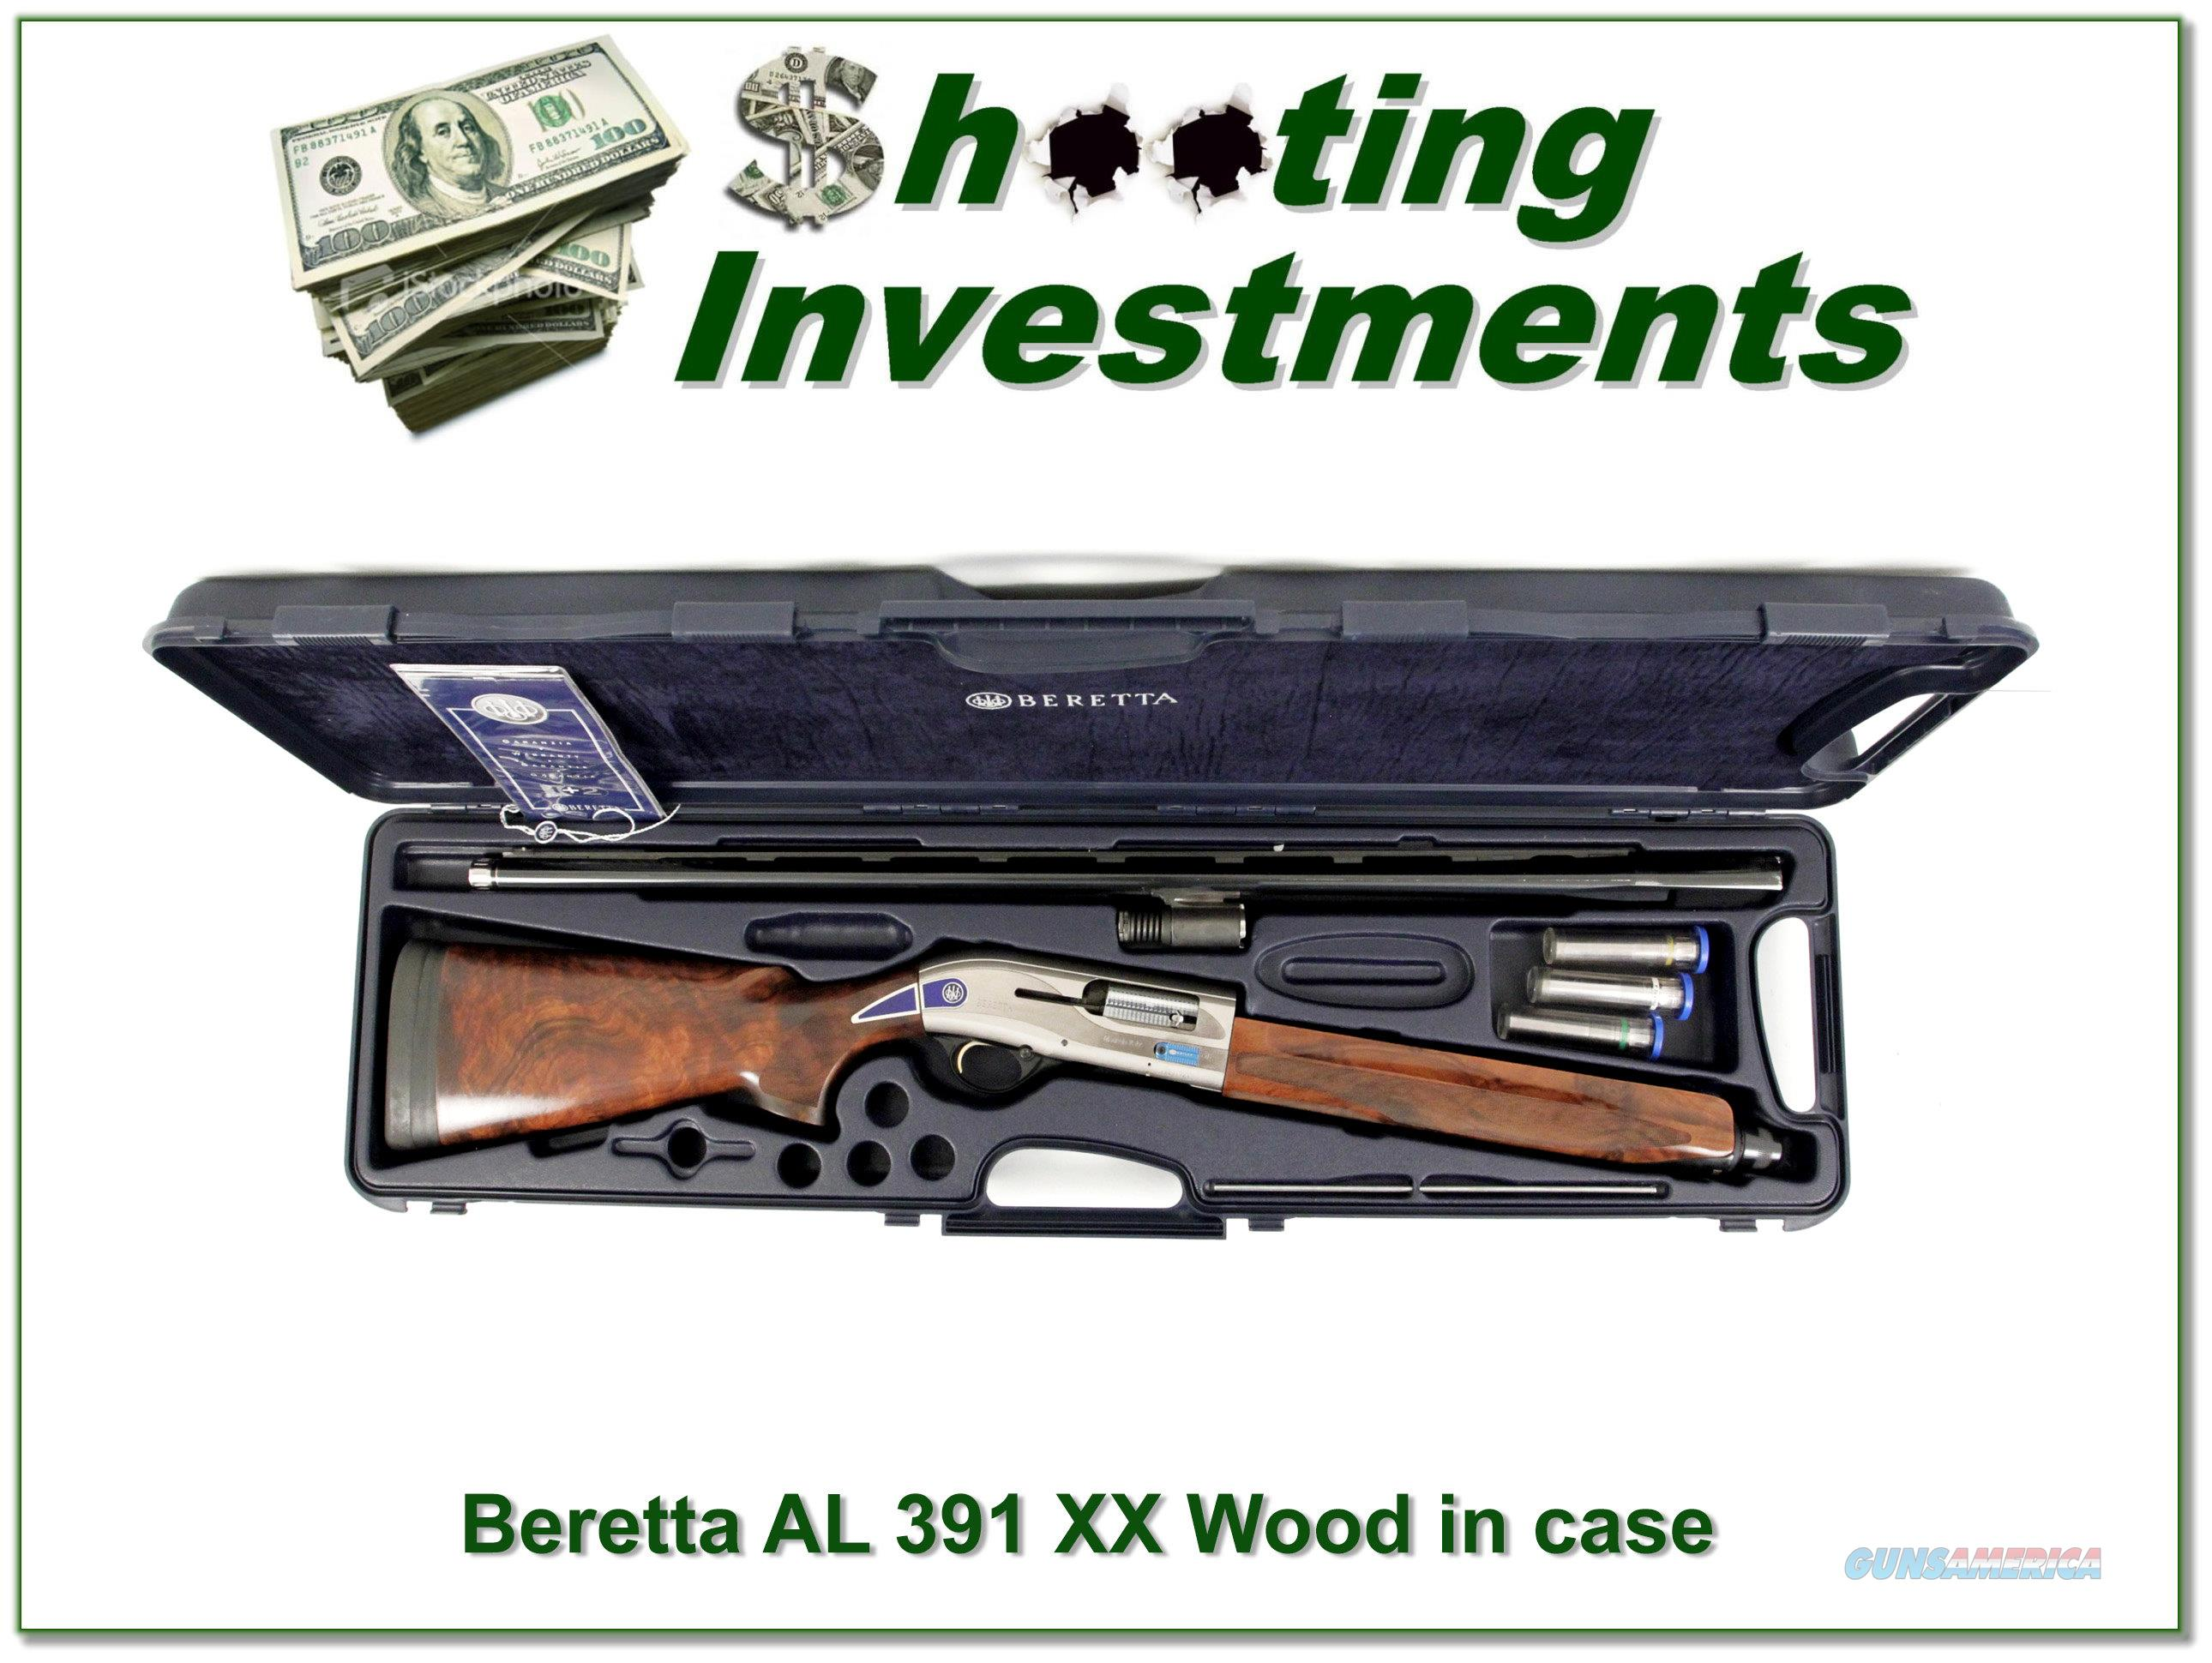 Beretta AL 391 Teknys Gold Custom Shop 12 Gauge 30in XX Wood!  Guns > Shotguns > Beretta Shotguns > Autoloaders > Hunting